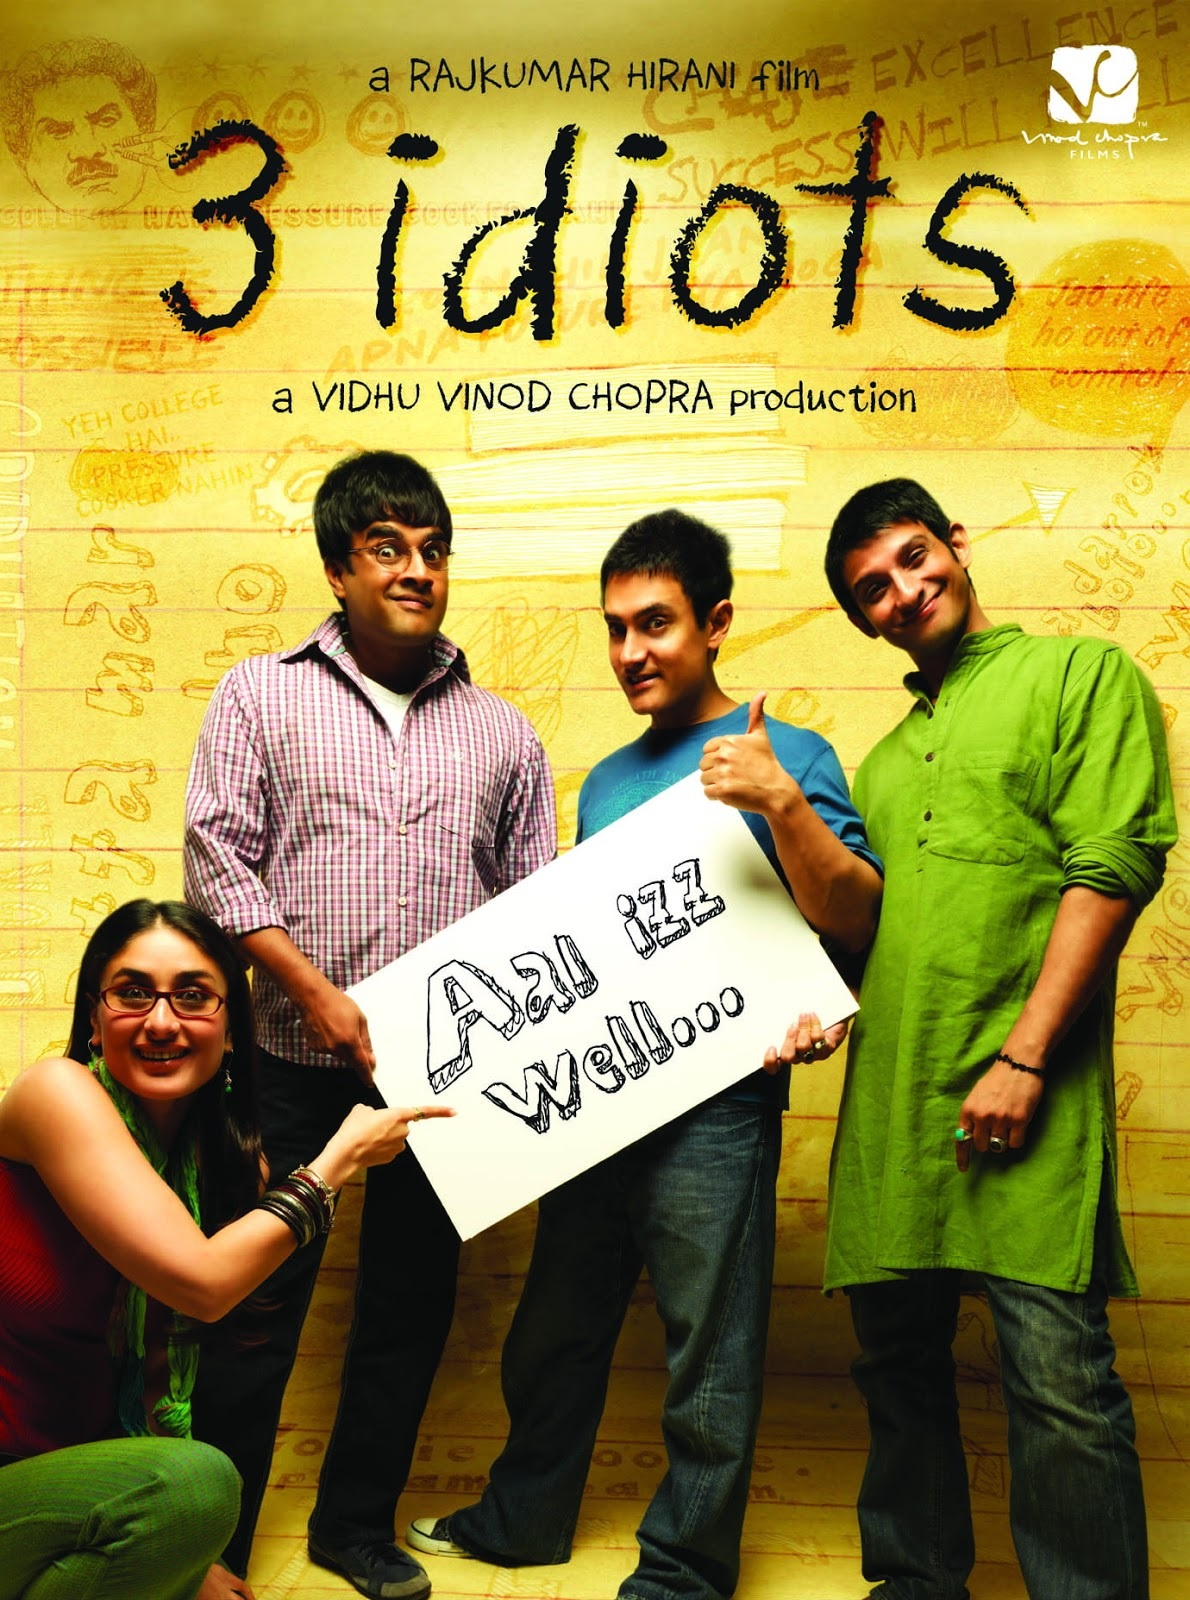 three idiots movie songs free download